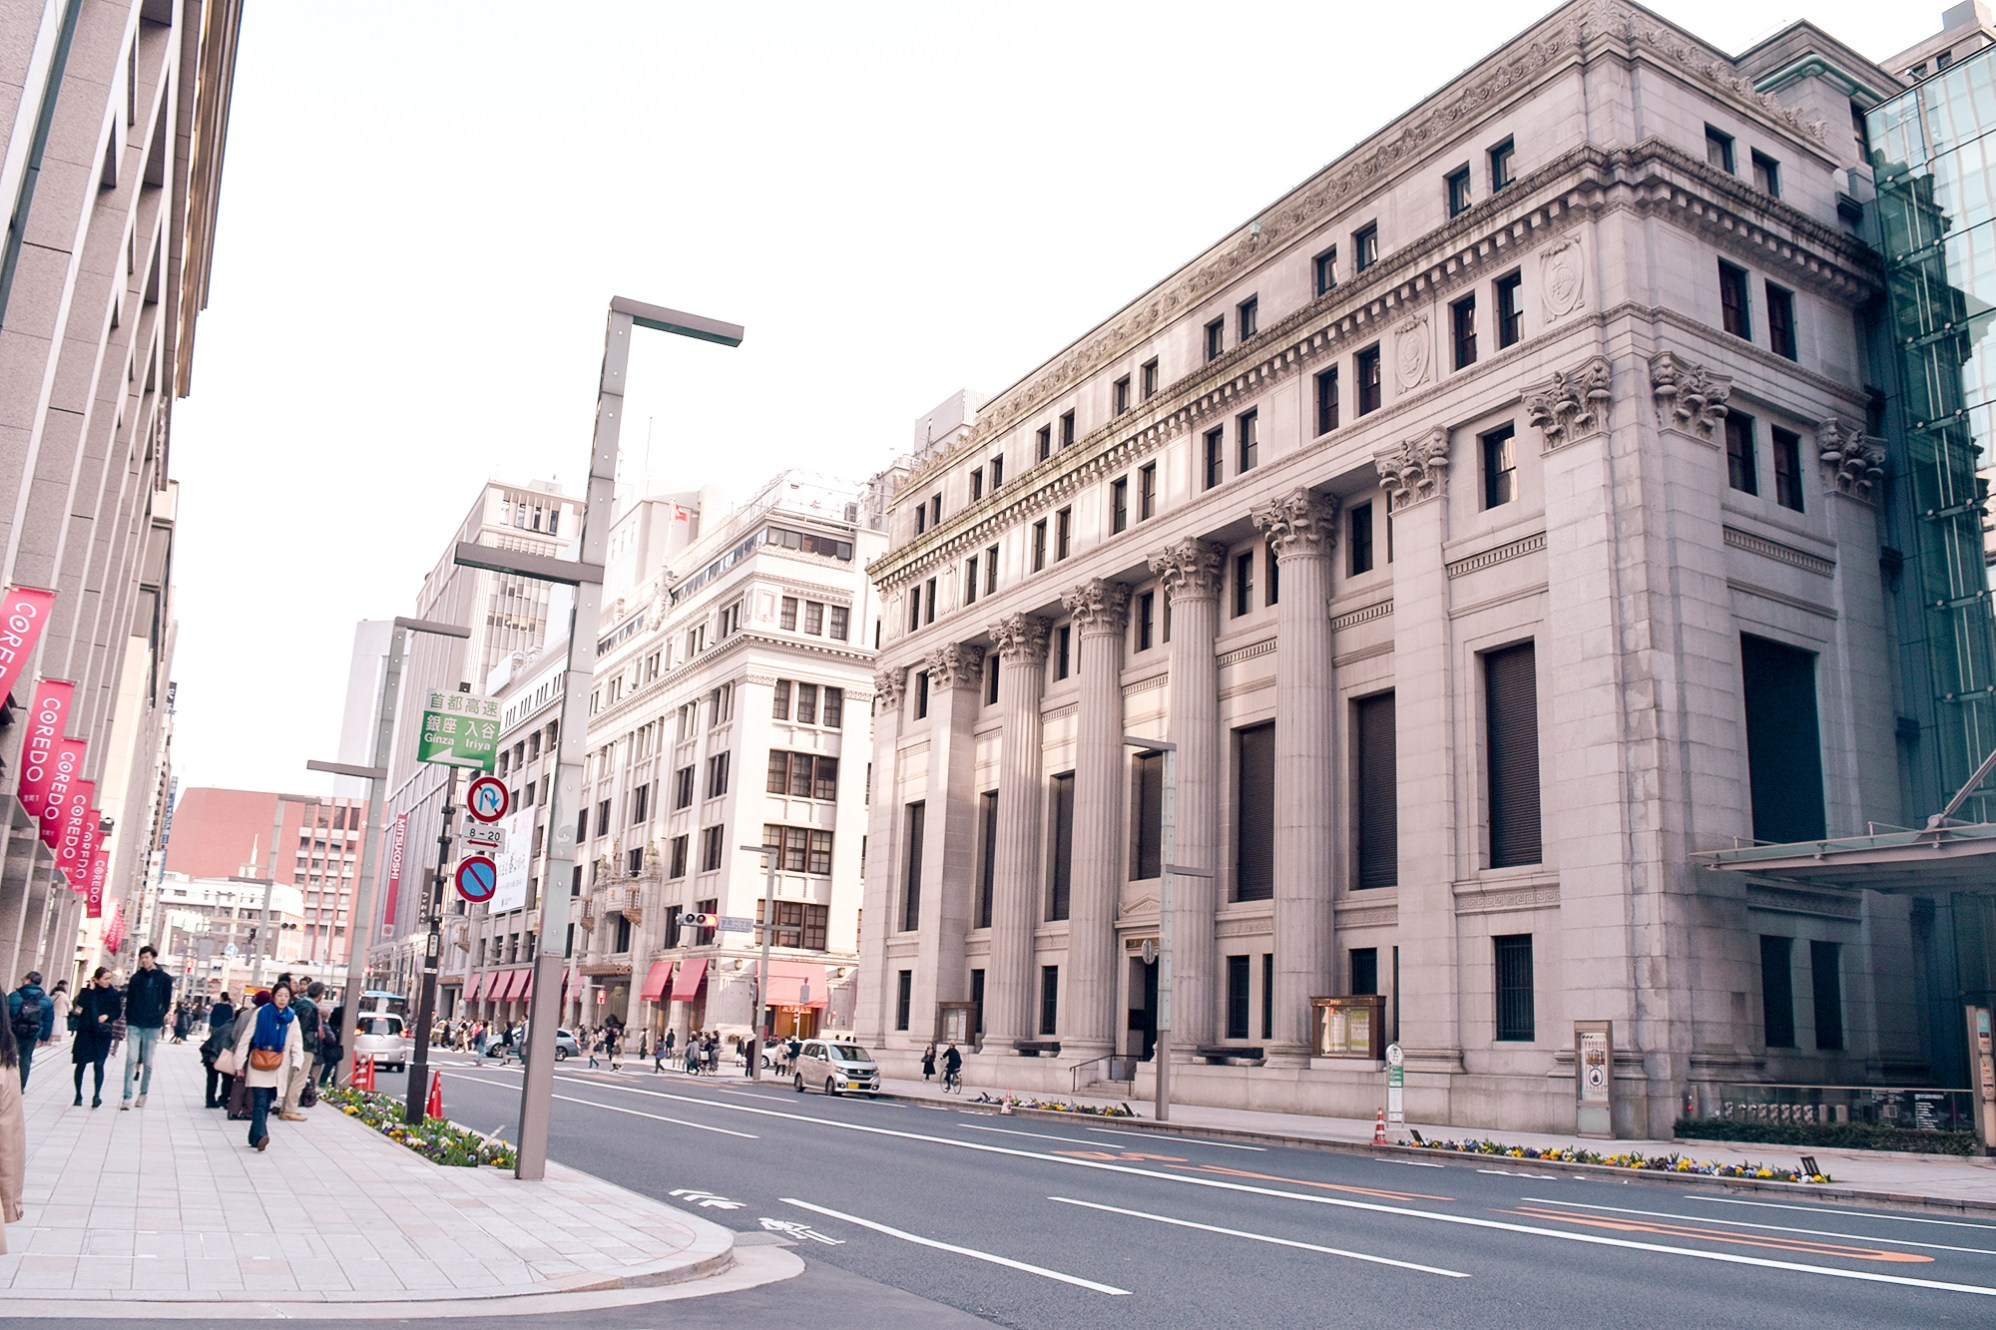 European-style buildings in Nihonbashi